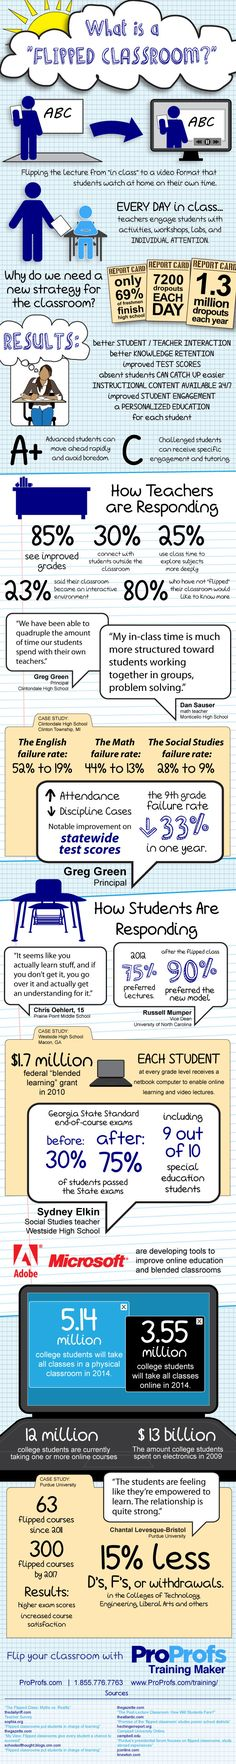 What is a Flipped Classroom Infographic Plus The Educator Guide to Flipped Classroom | e-Learning Infographics